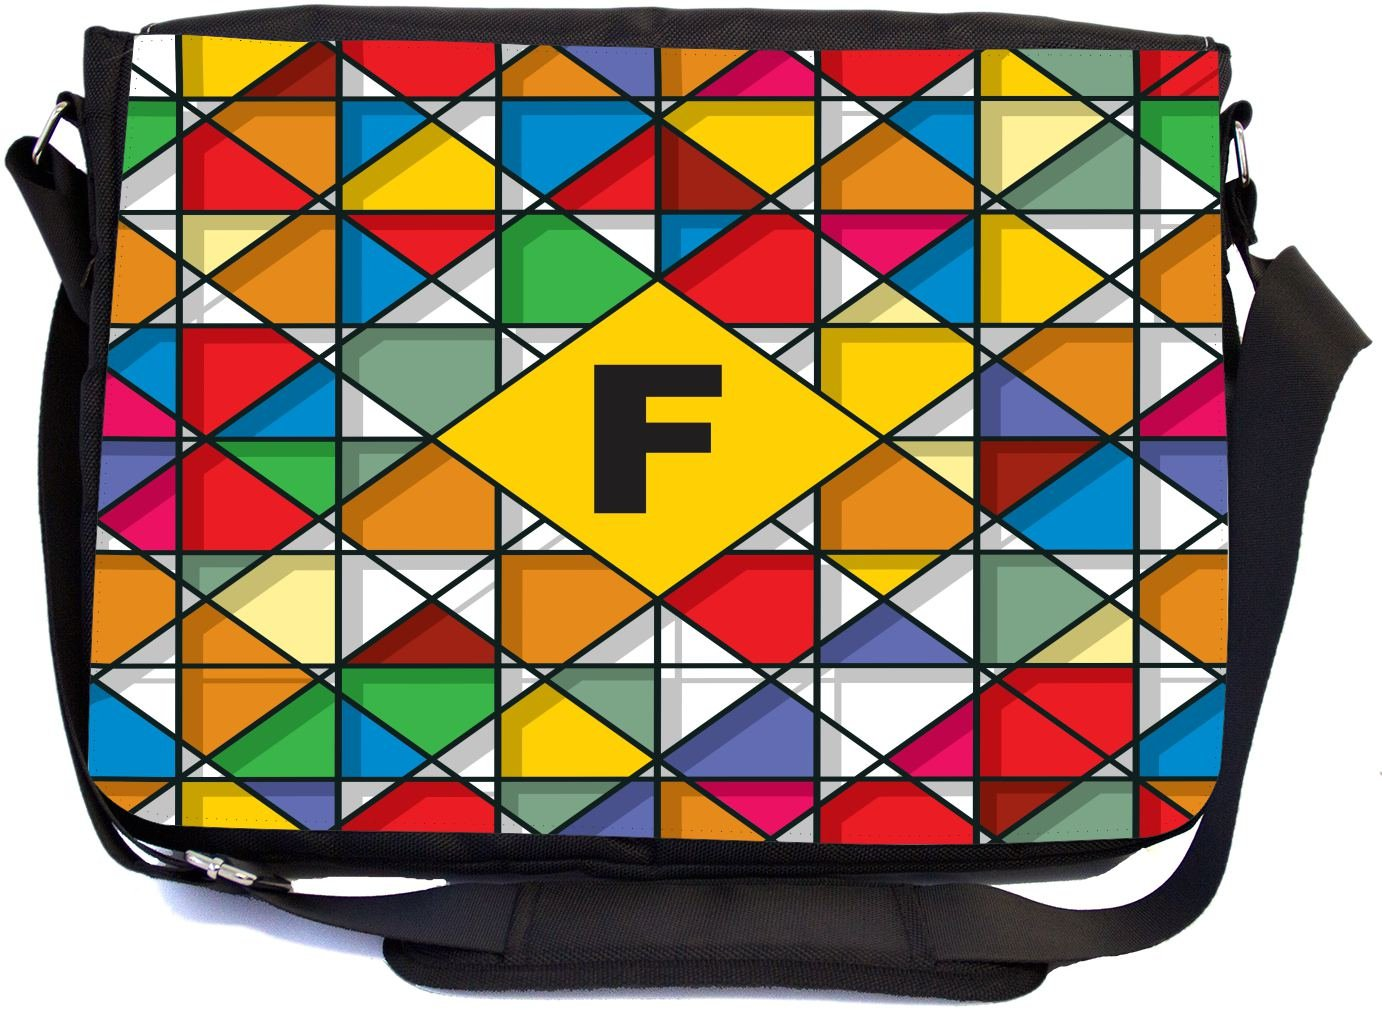 Rikki Knight Letter F Monogram Vibrant Colors Stained Glass Design Design Multifunctional Messenger Bag - School Bag - Laptop Bag - Includes Matching Compact Mirror